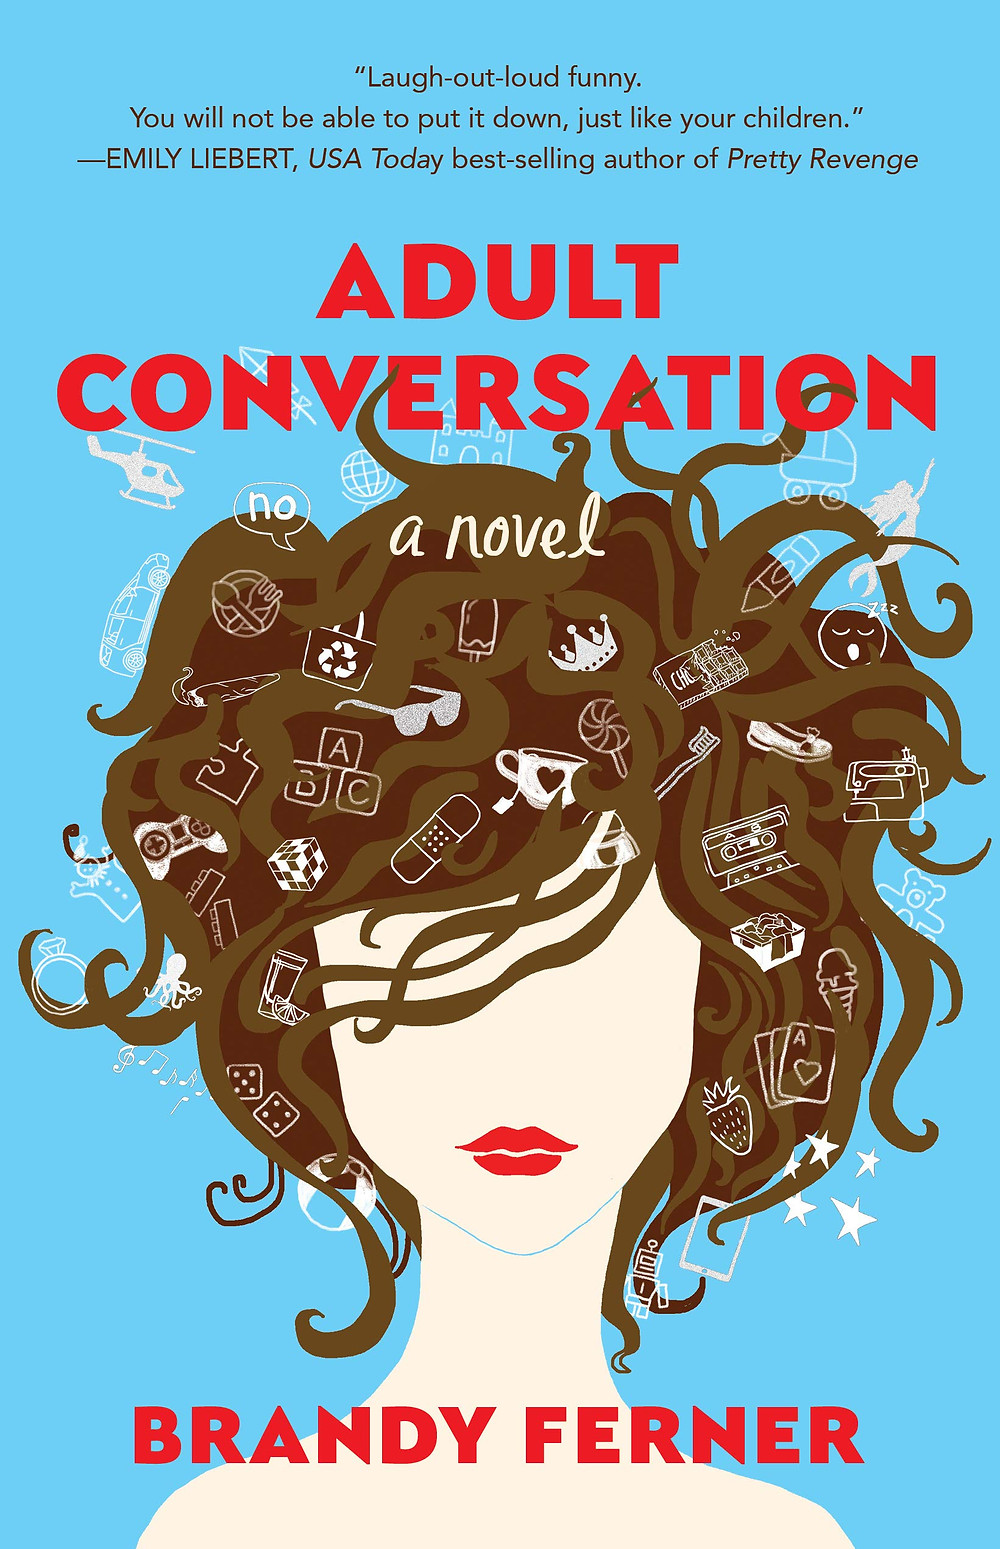 book cover of Brandy Ferner's Adult Conversation